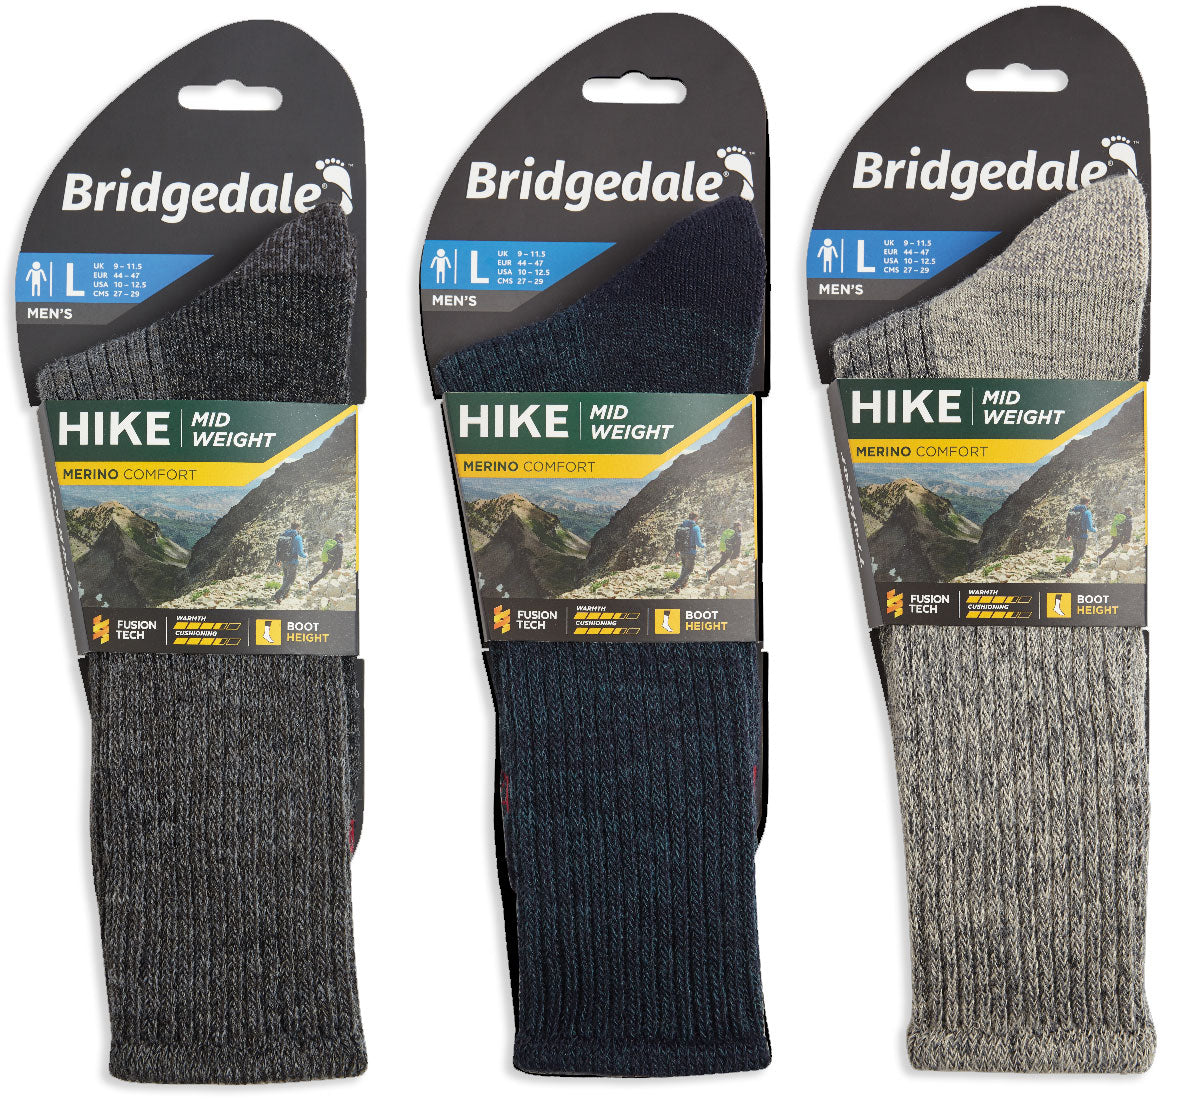 Packaging detail Bridgedale Hike Midweight Comfort Sock